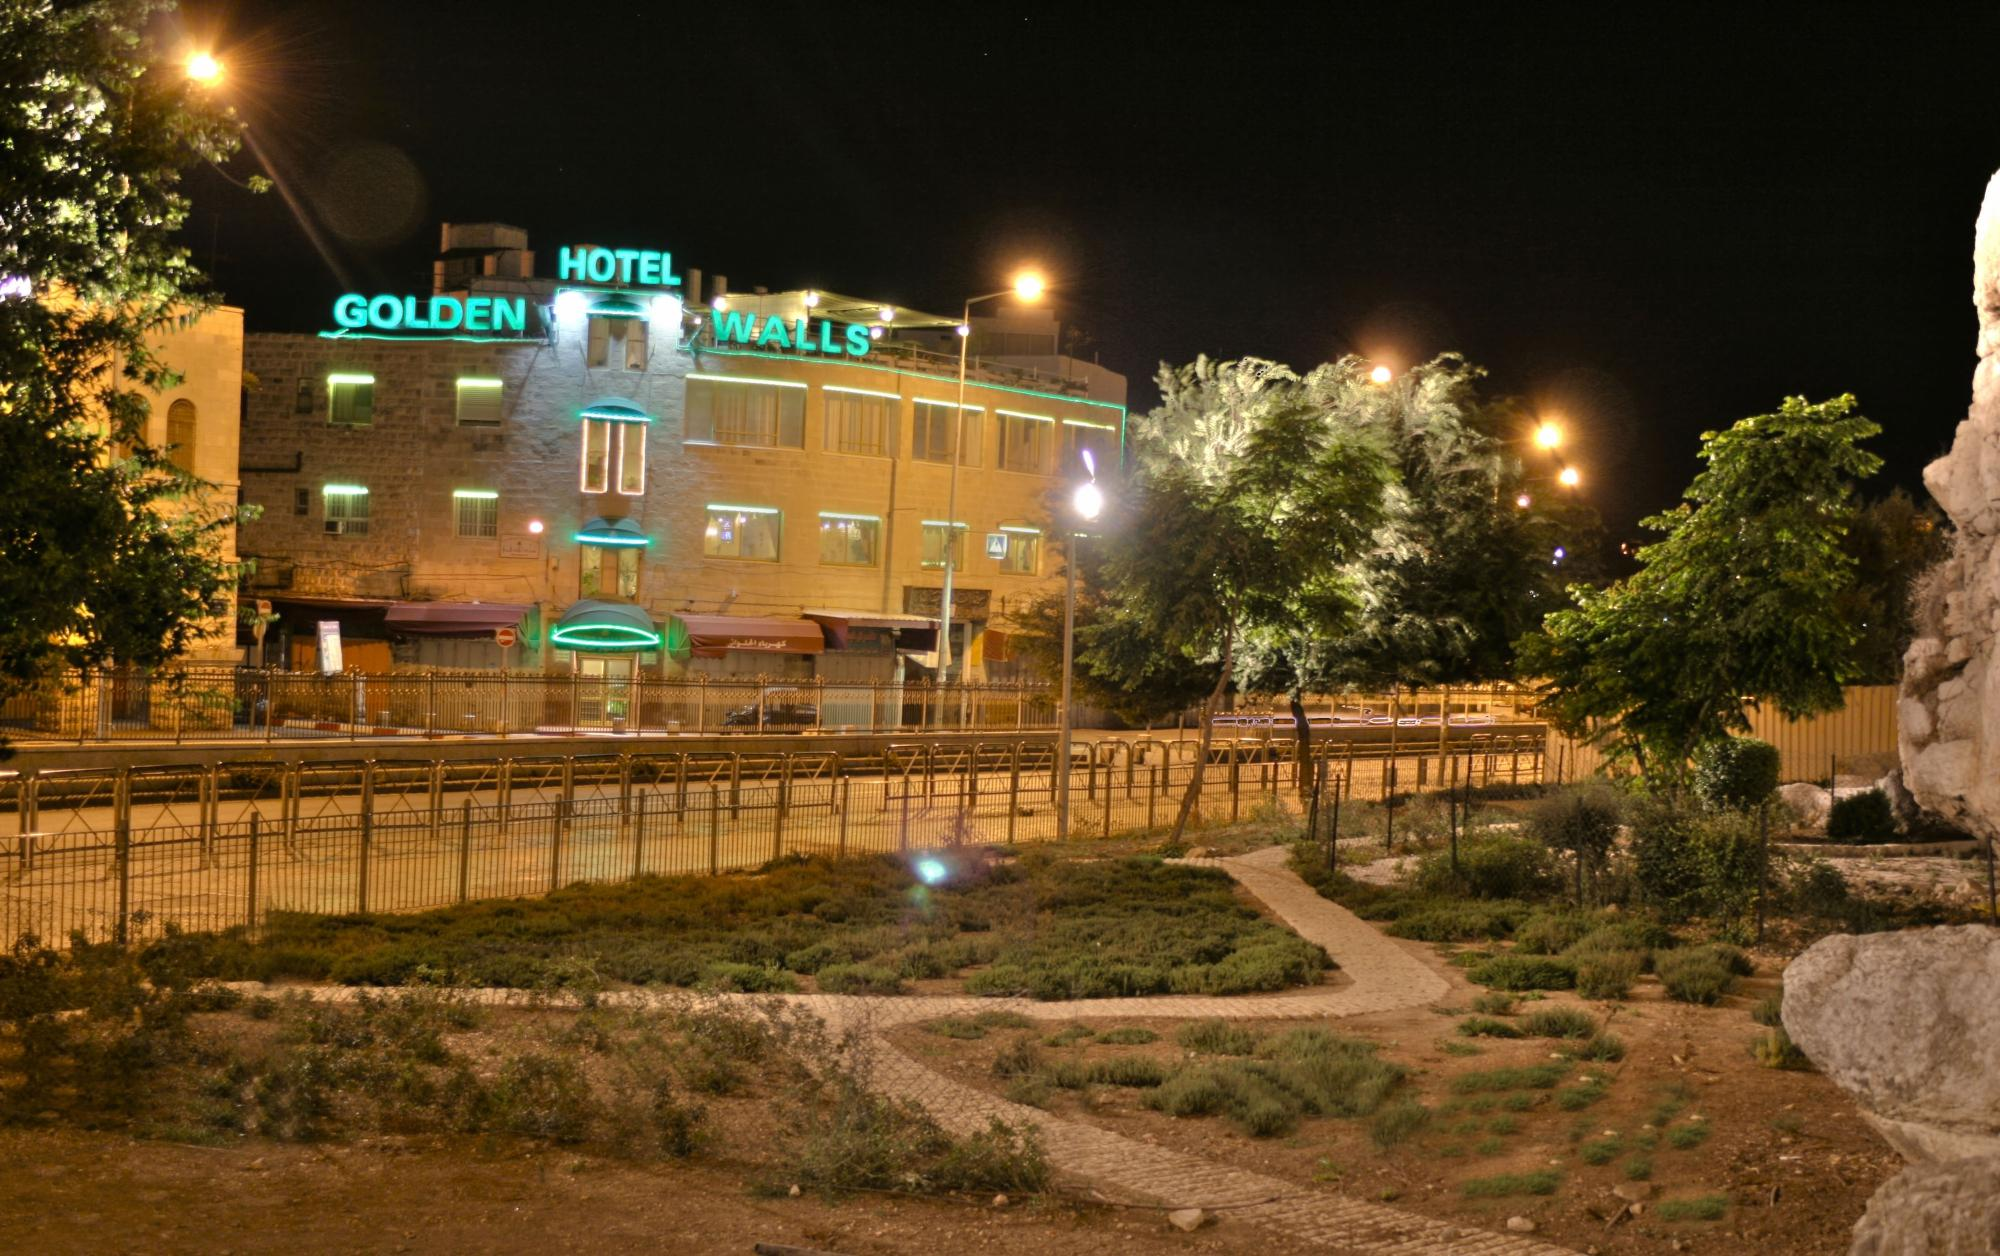 Golden Walls Hotel